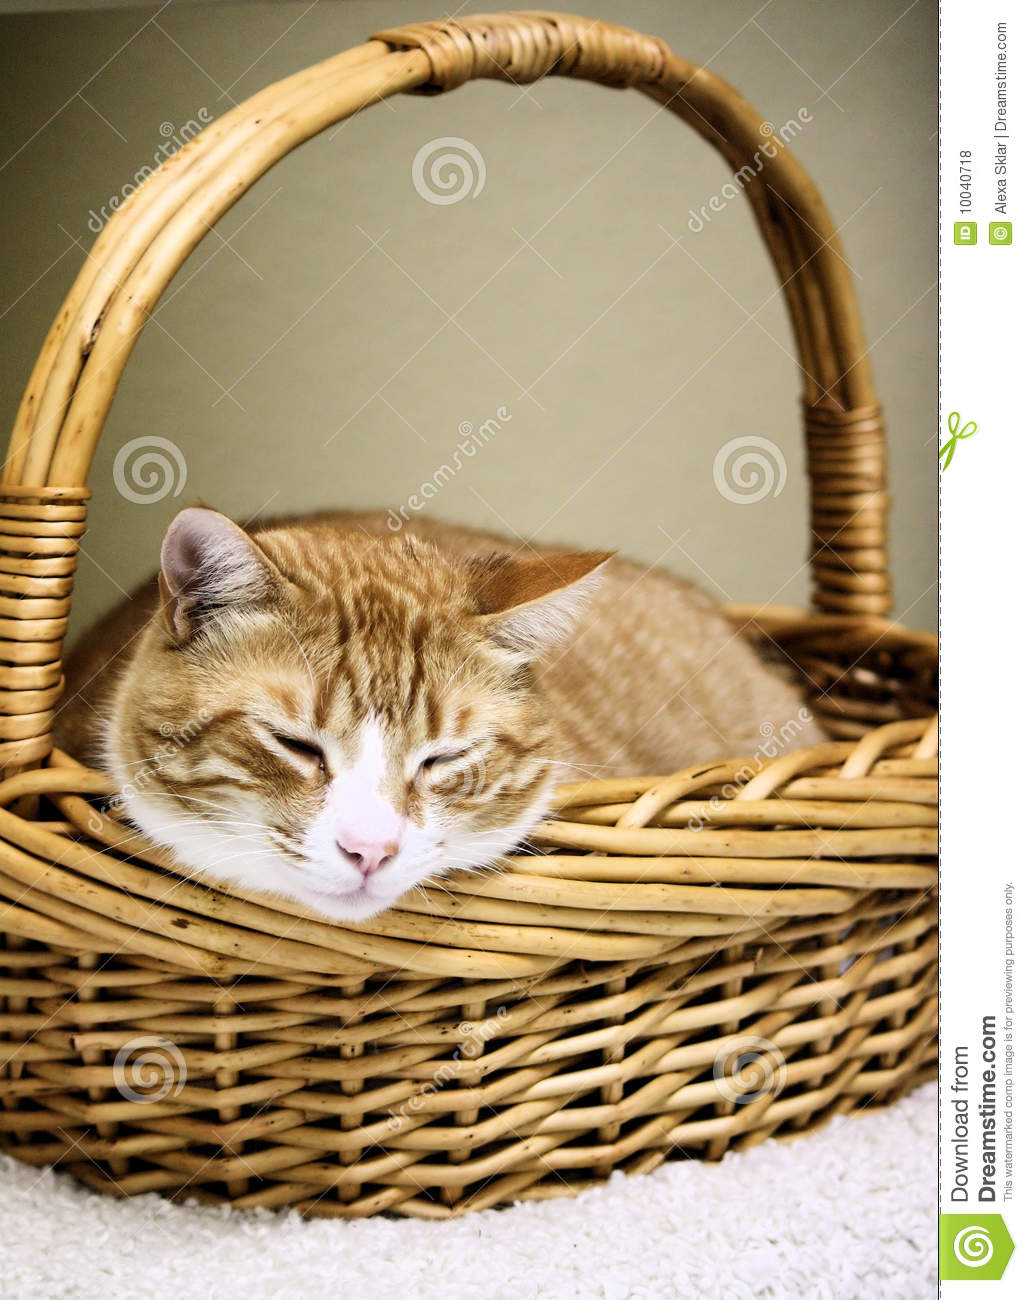 Cat Basket Clipart : Cat in a basket royalty free stock photos image